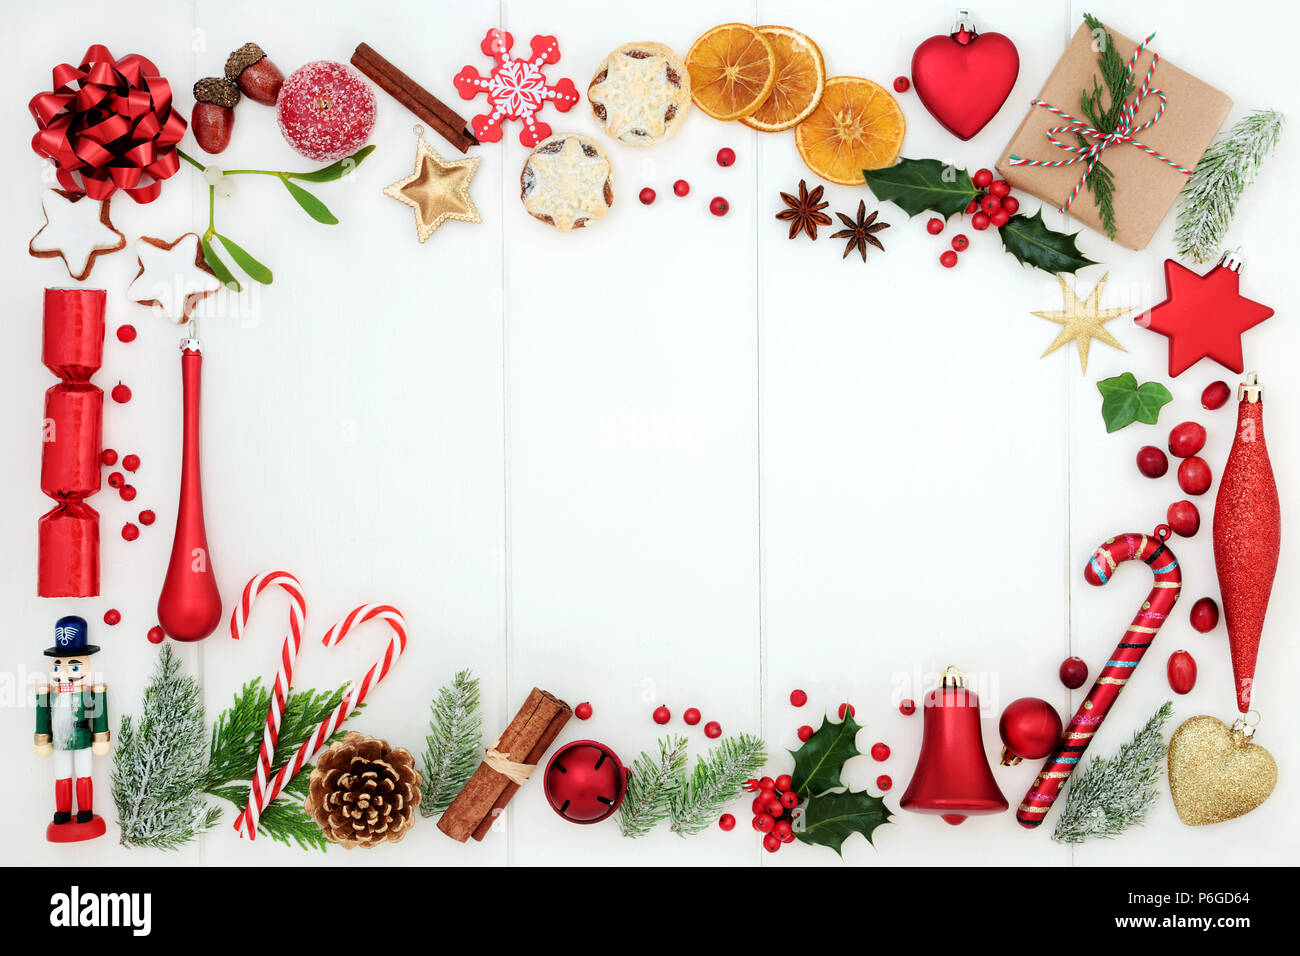 Christmas Background Border With Traditional Symbols Of Bauble